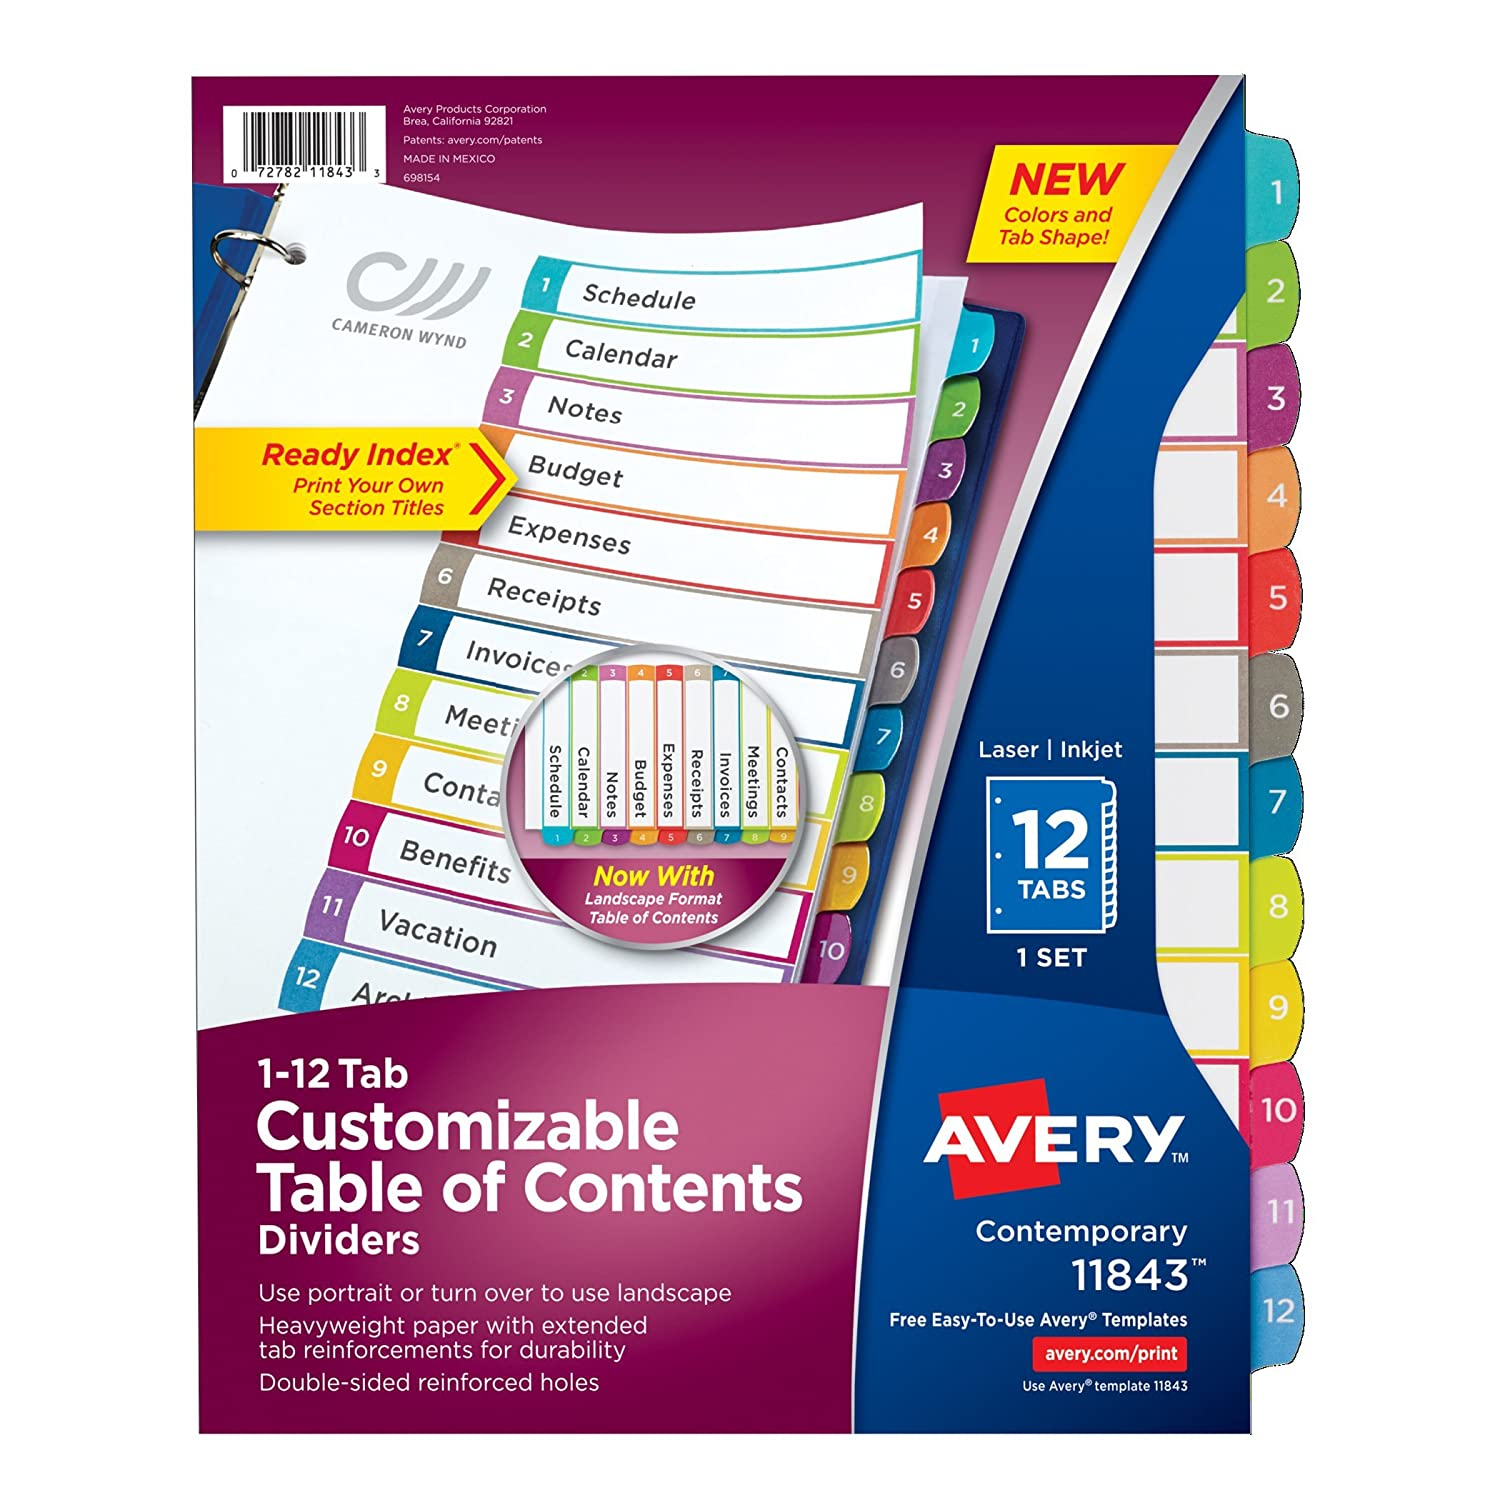 Avery Customizable Table of Contents Dividers, 12-Tab Set (11843) Avery Products Corporation